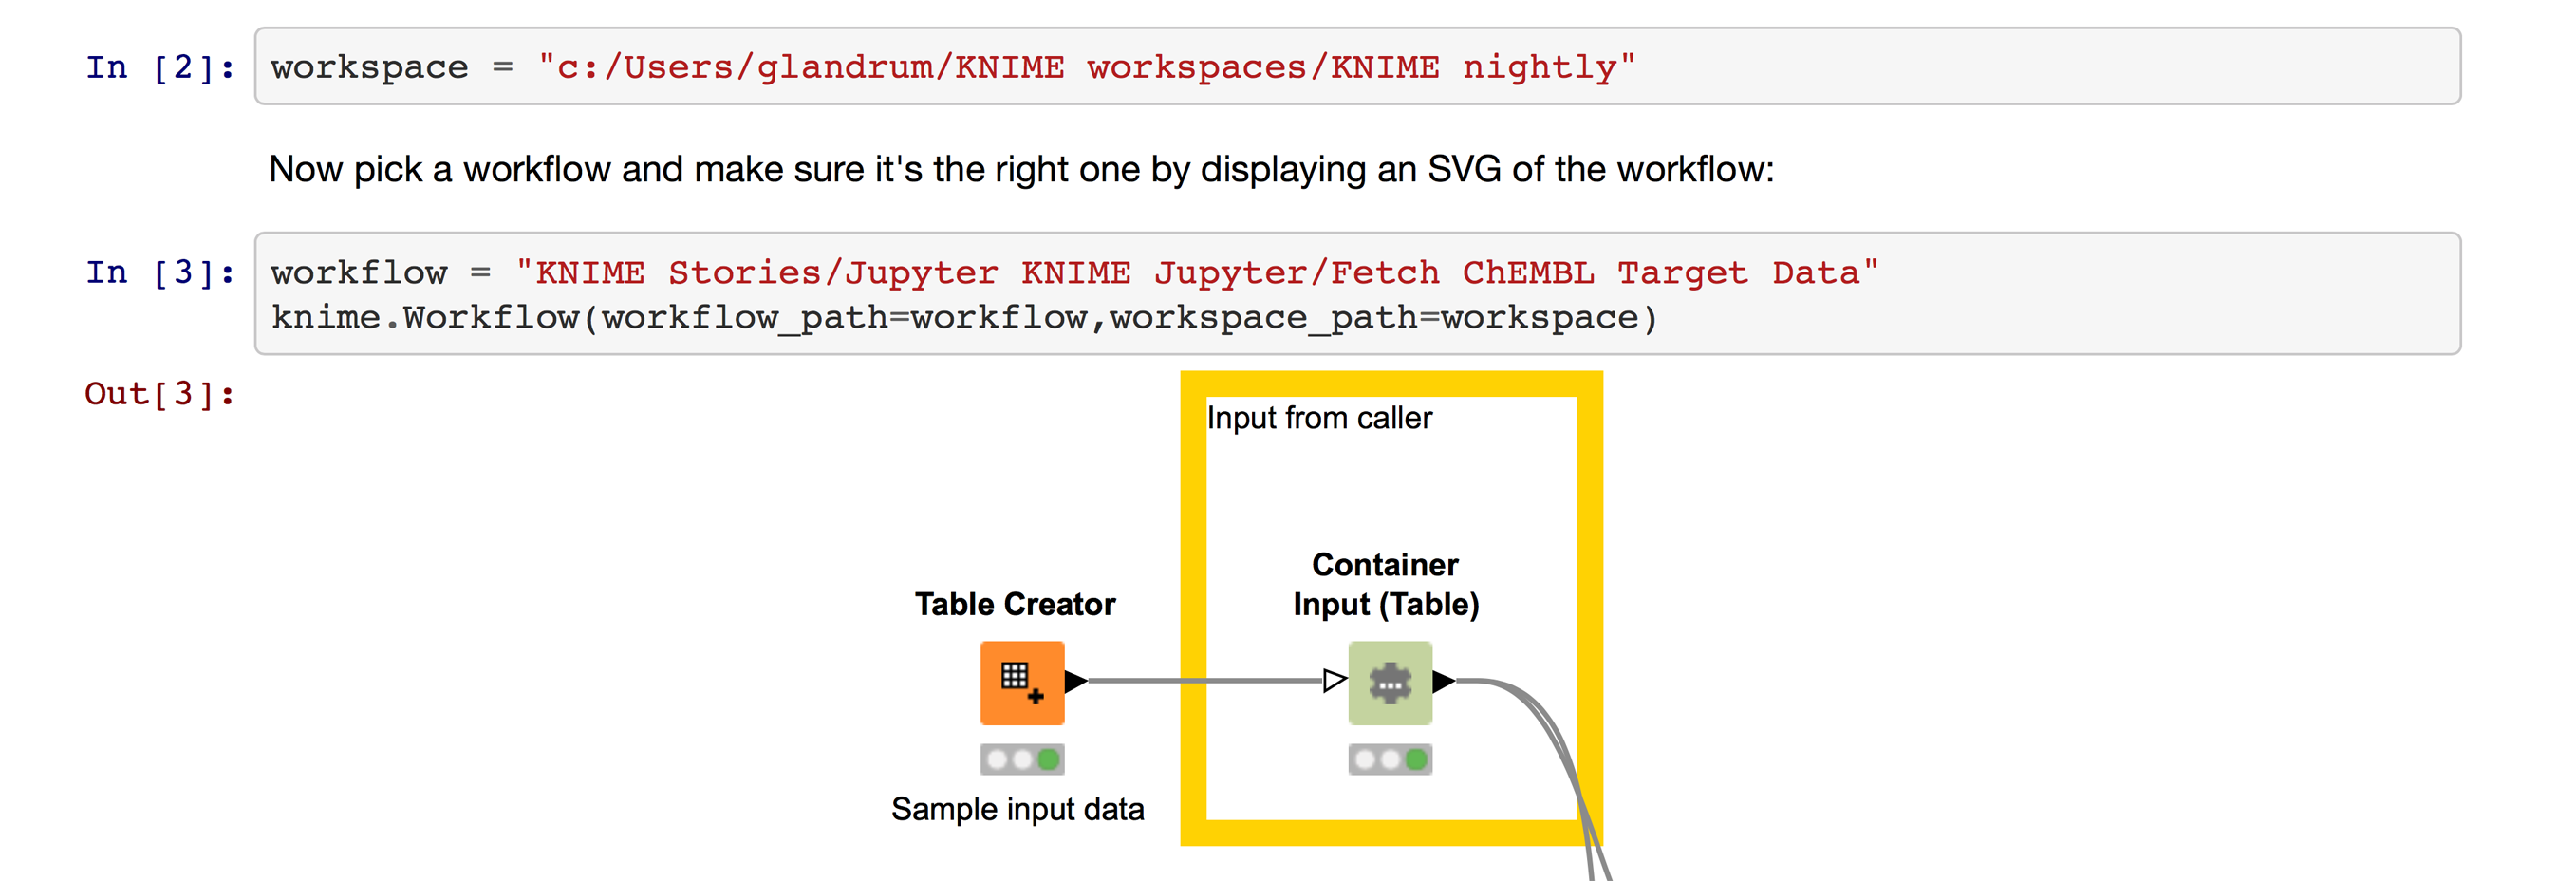 Opening a KNIME workflow in Jupyter, specifying the filesystem path to the KNIME workspace and location of workflow in that workspace.